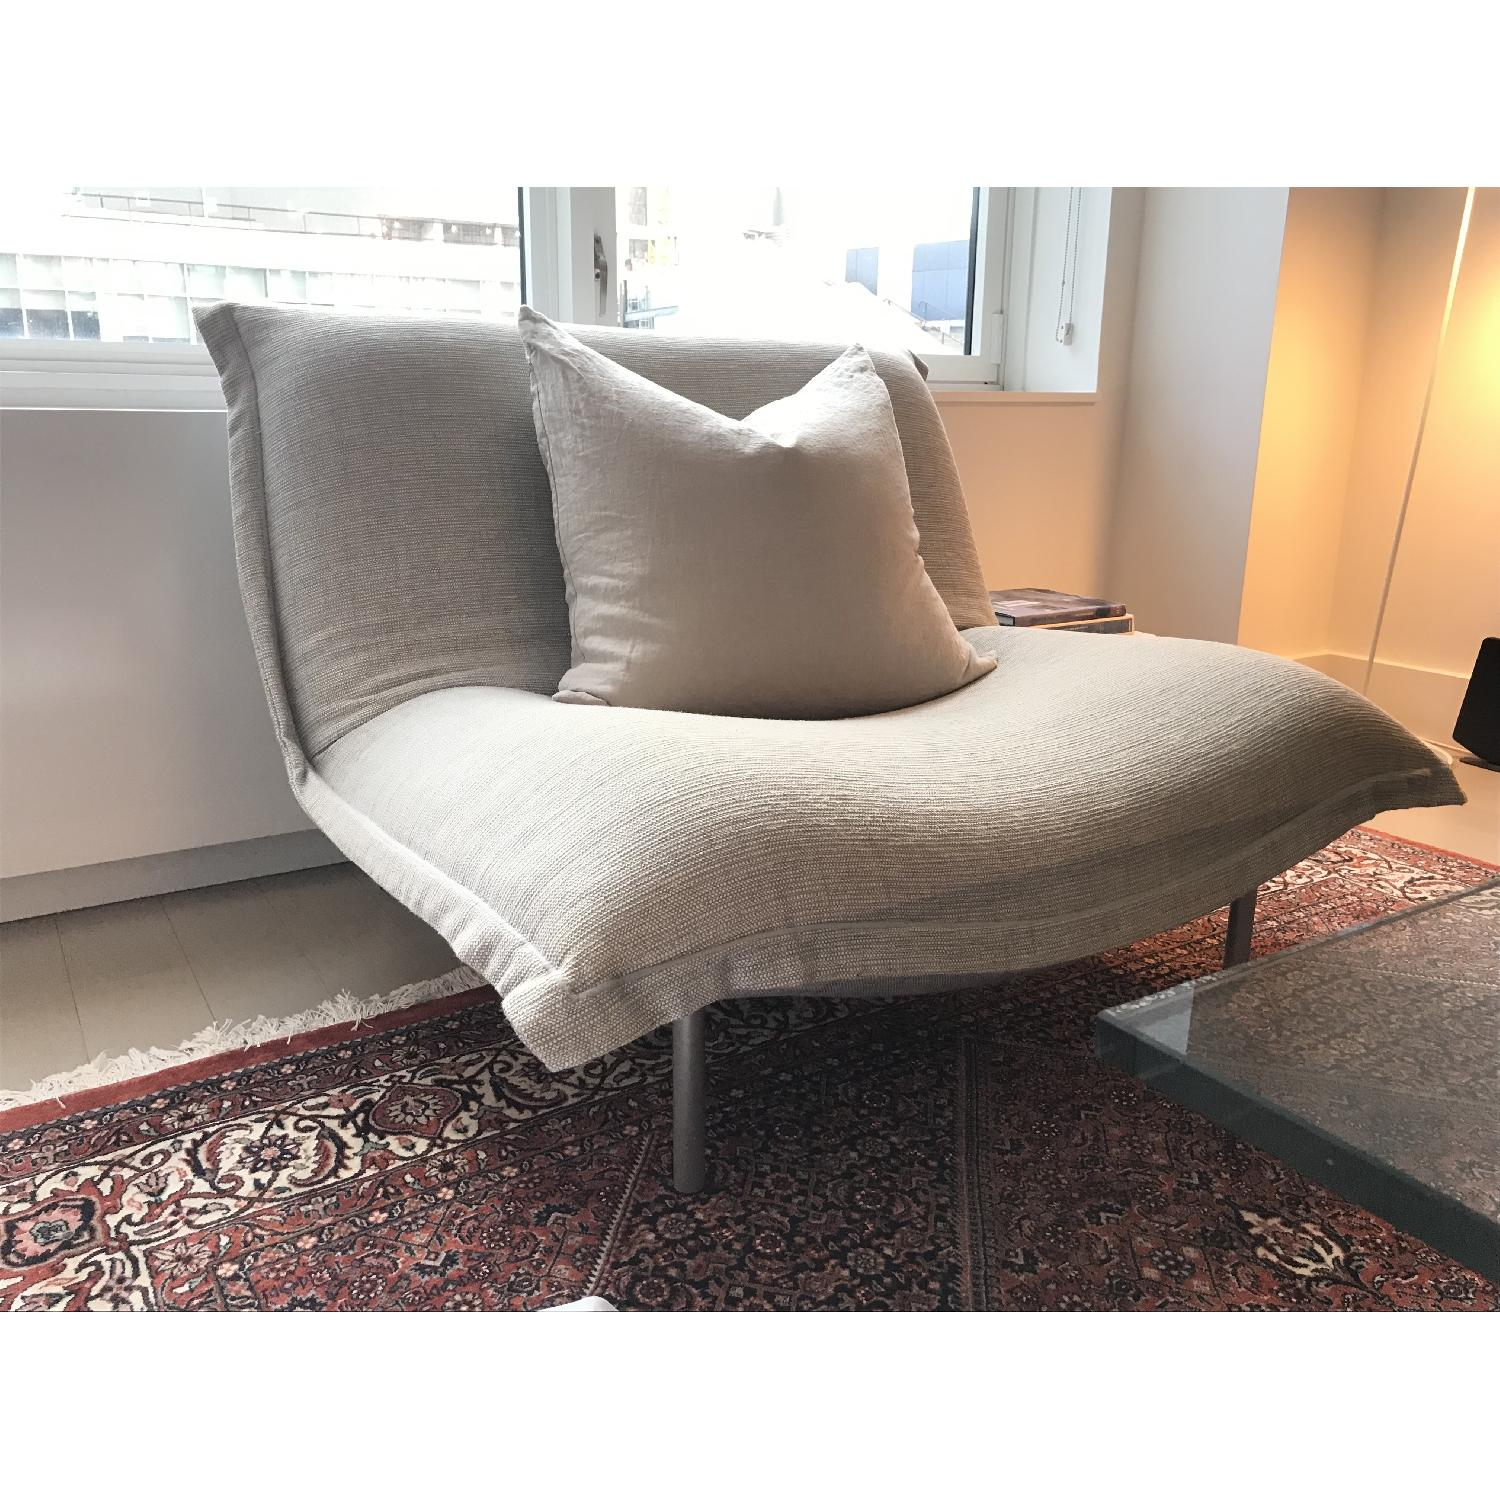 Ligne Roset Fabric Chair w/ Removable Cover - image-1